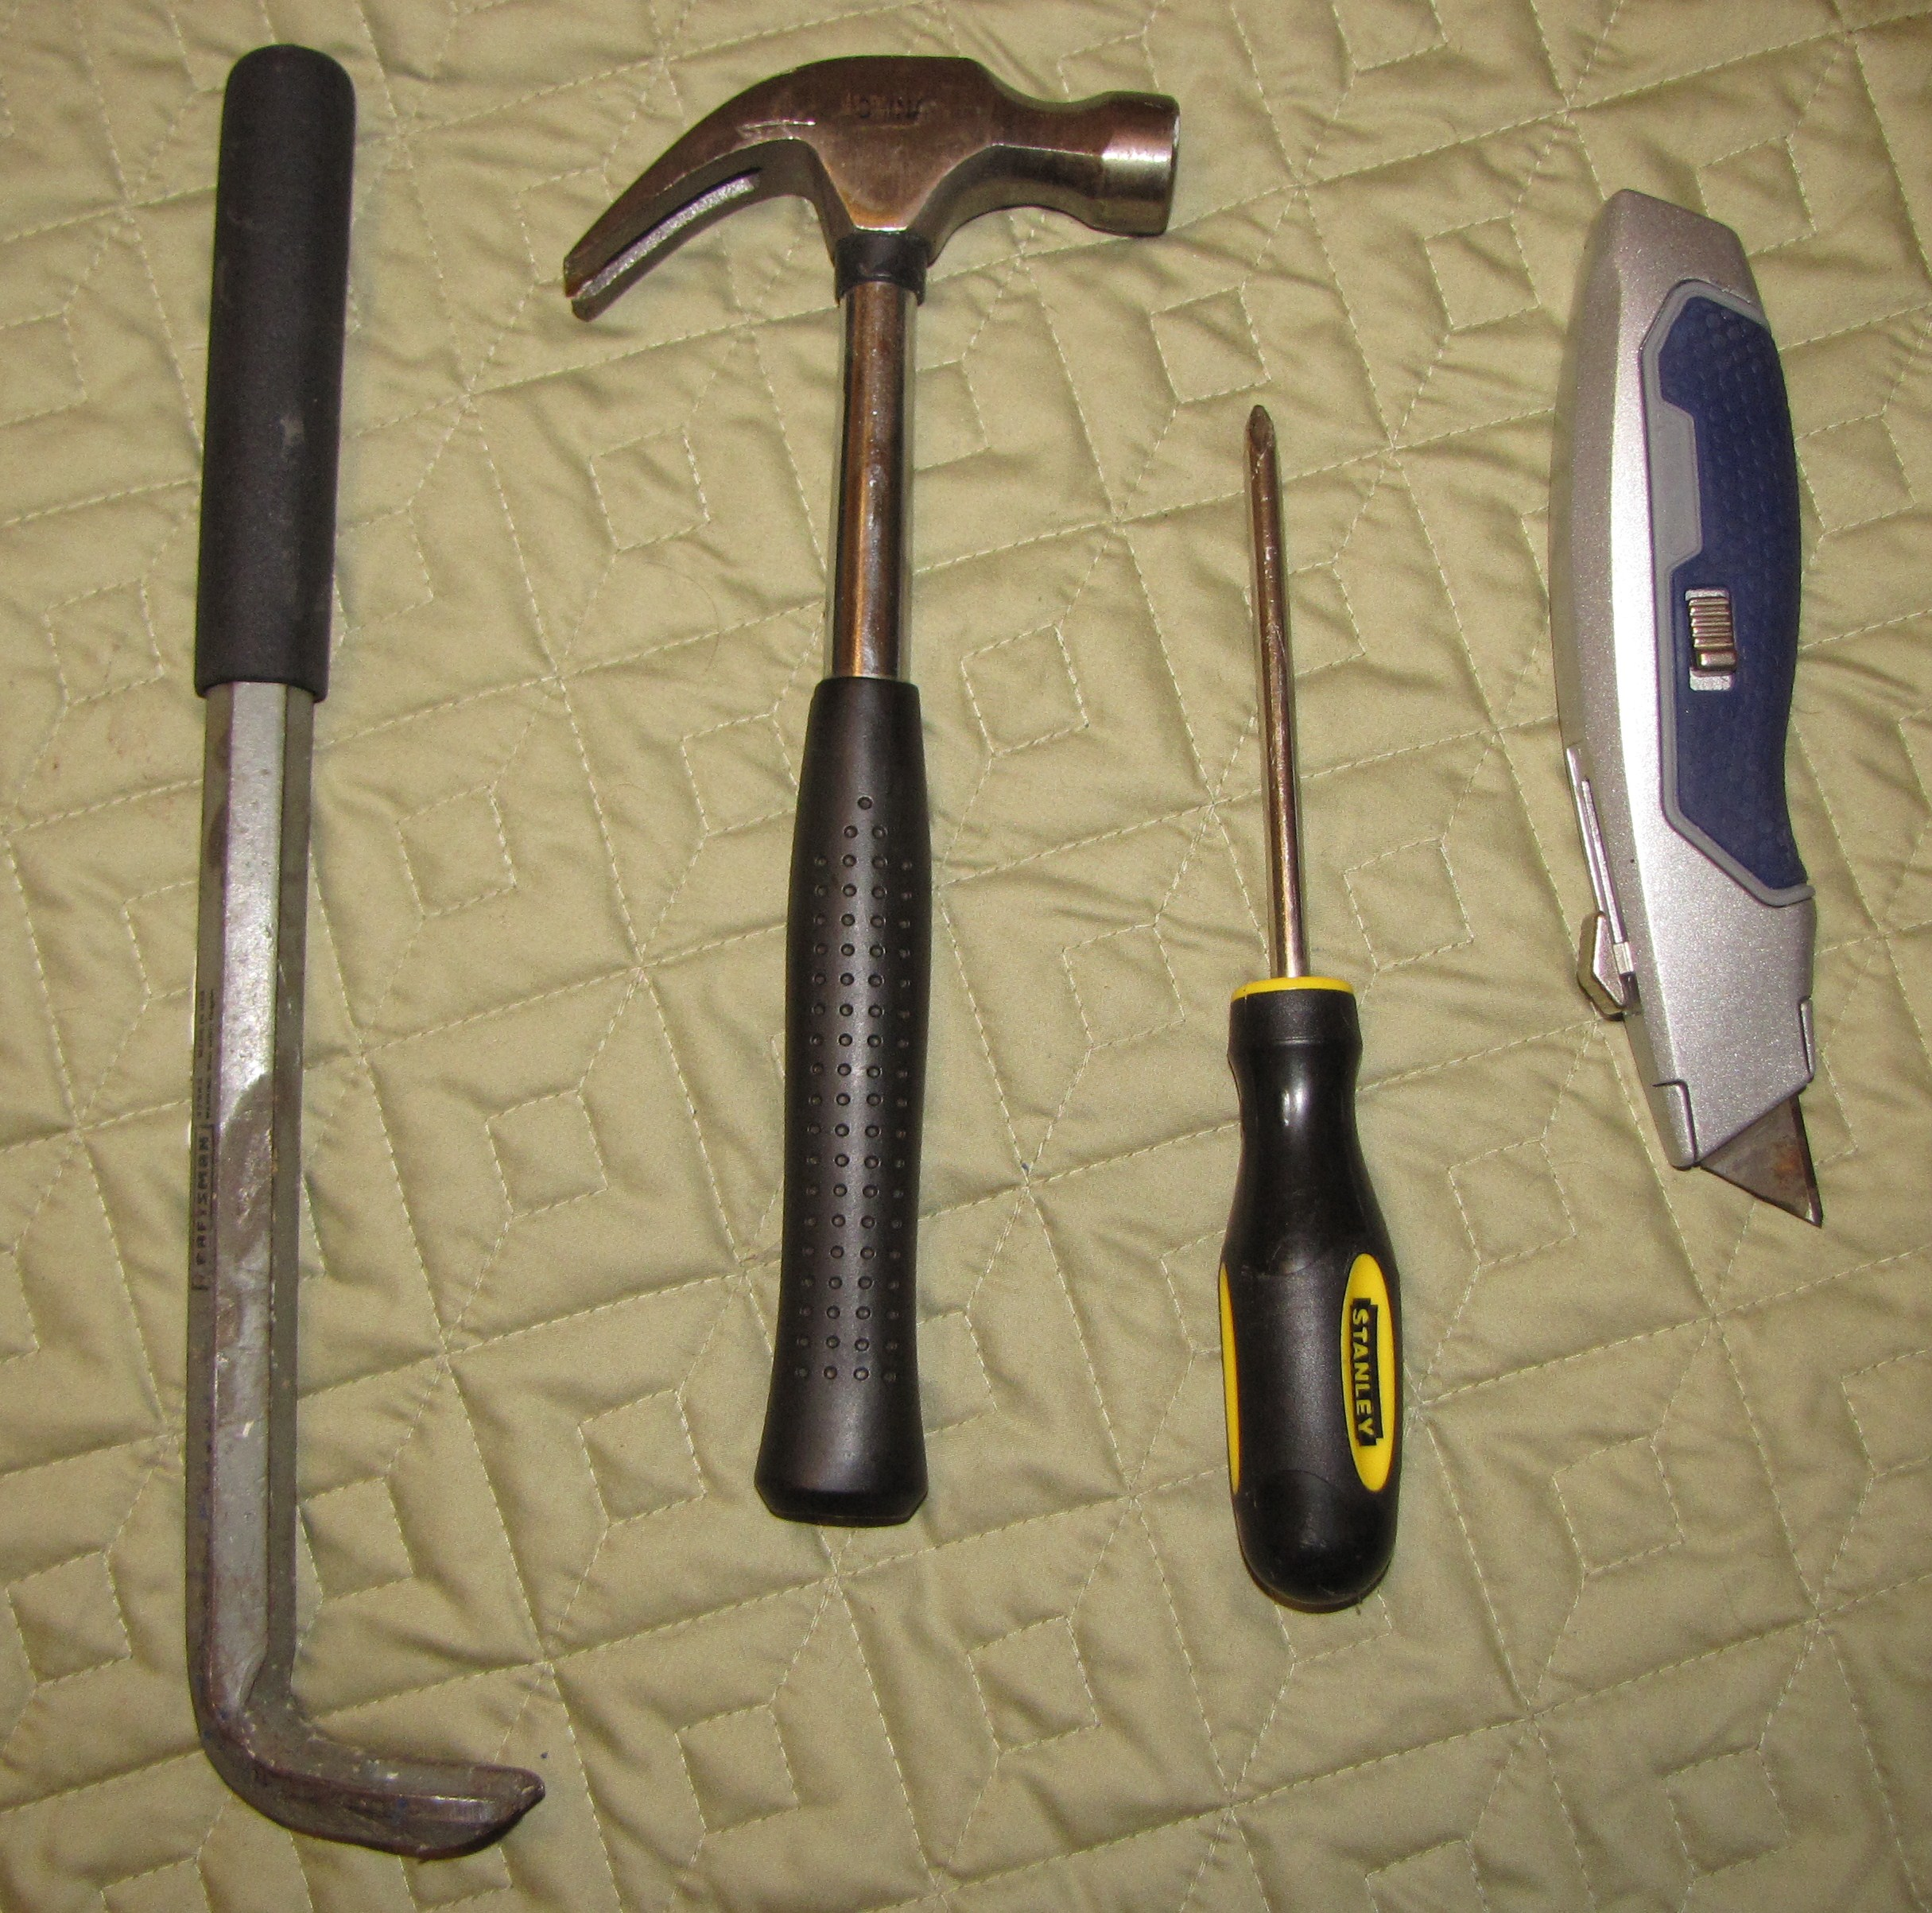 Image of four weapons often used in a robbery